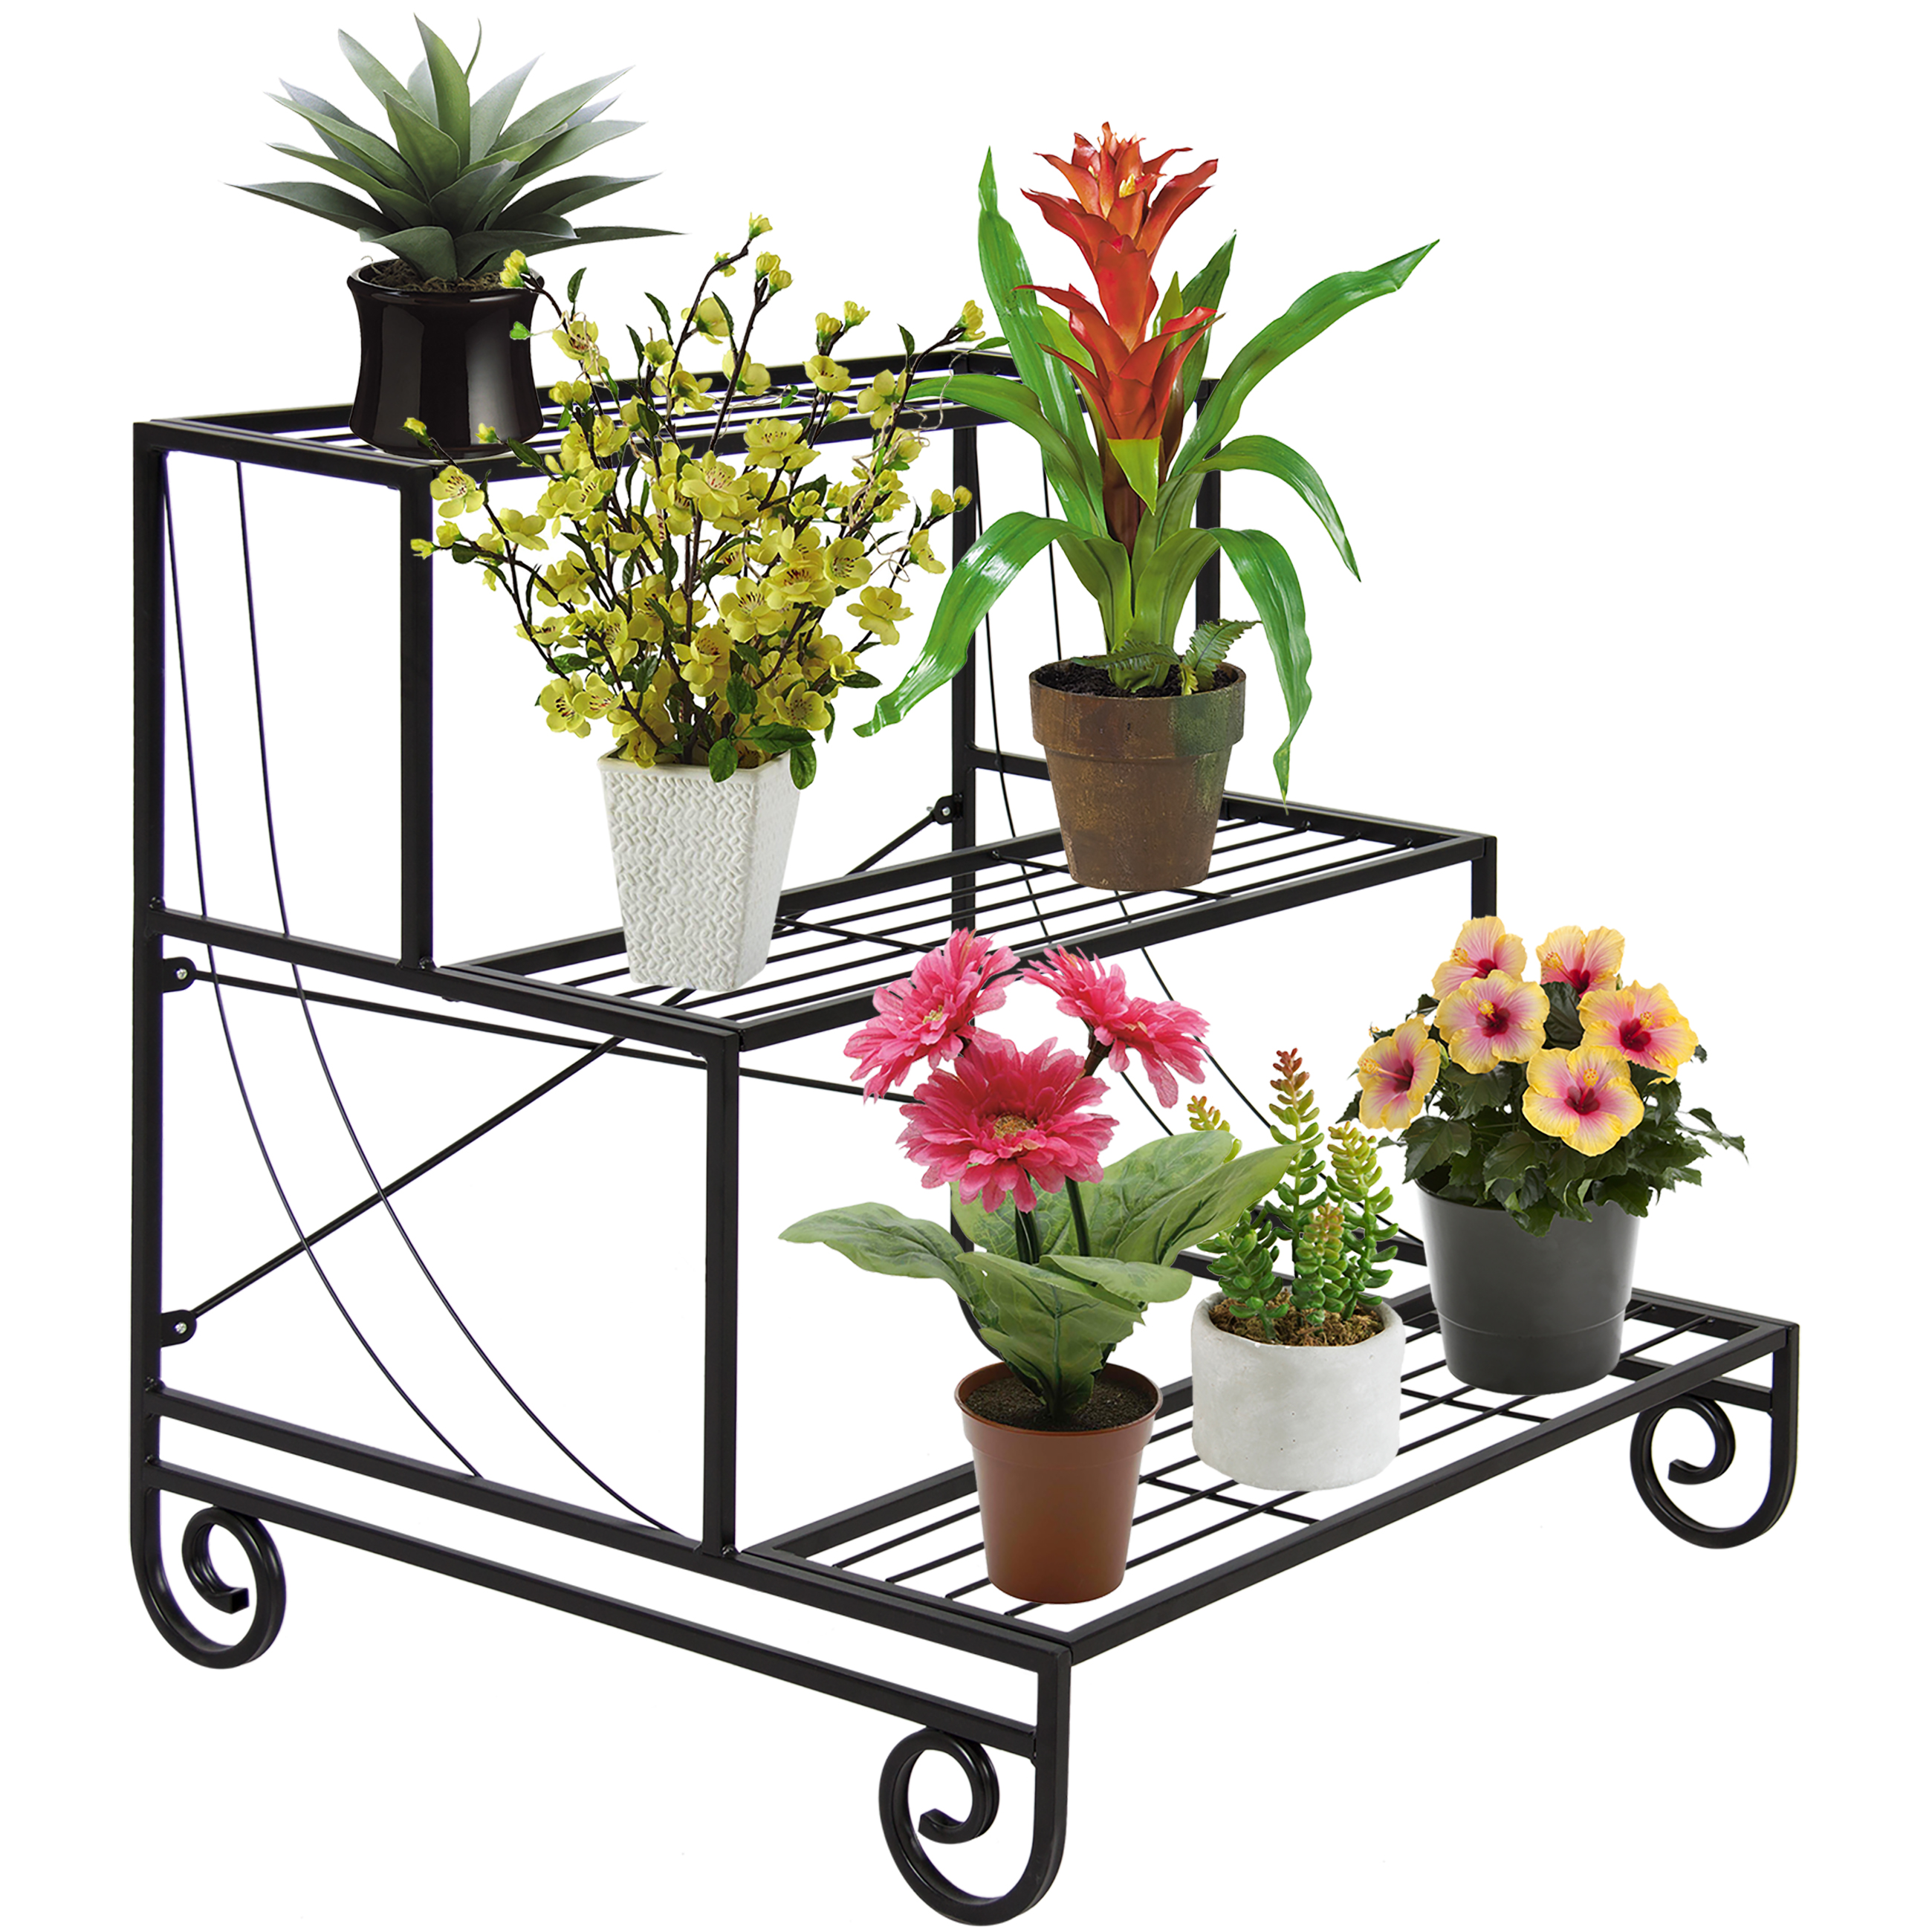 Best Choice Products 3 Tier Metal Raised Ladder Plant Stand Display Indoor Outdoor Decorative Planter Holder Flower Pot Shelf Rack Black